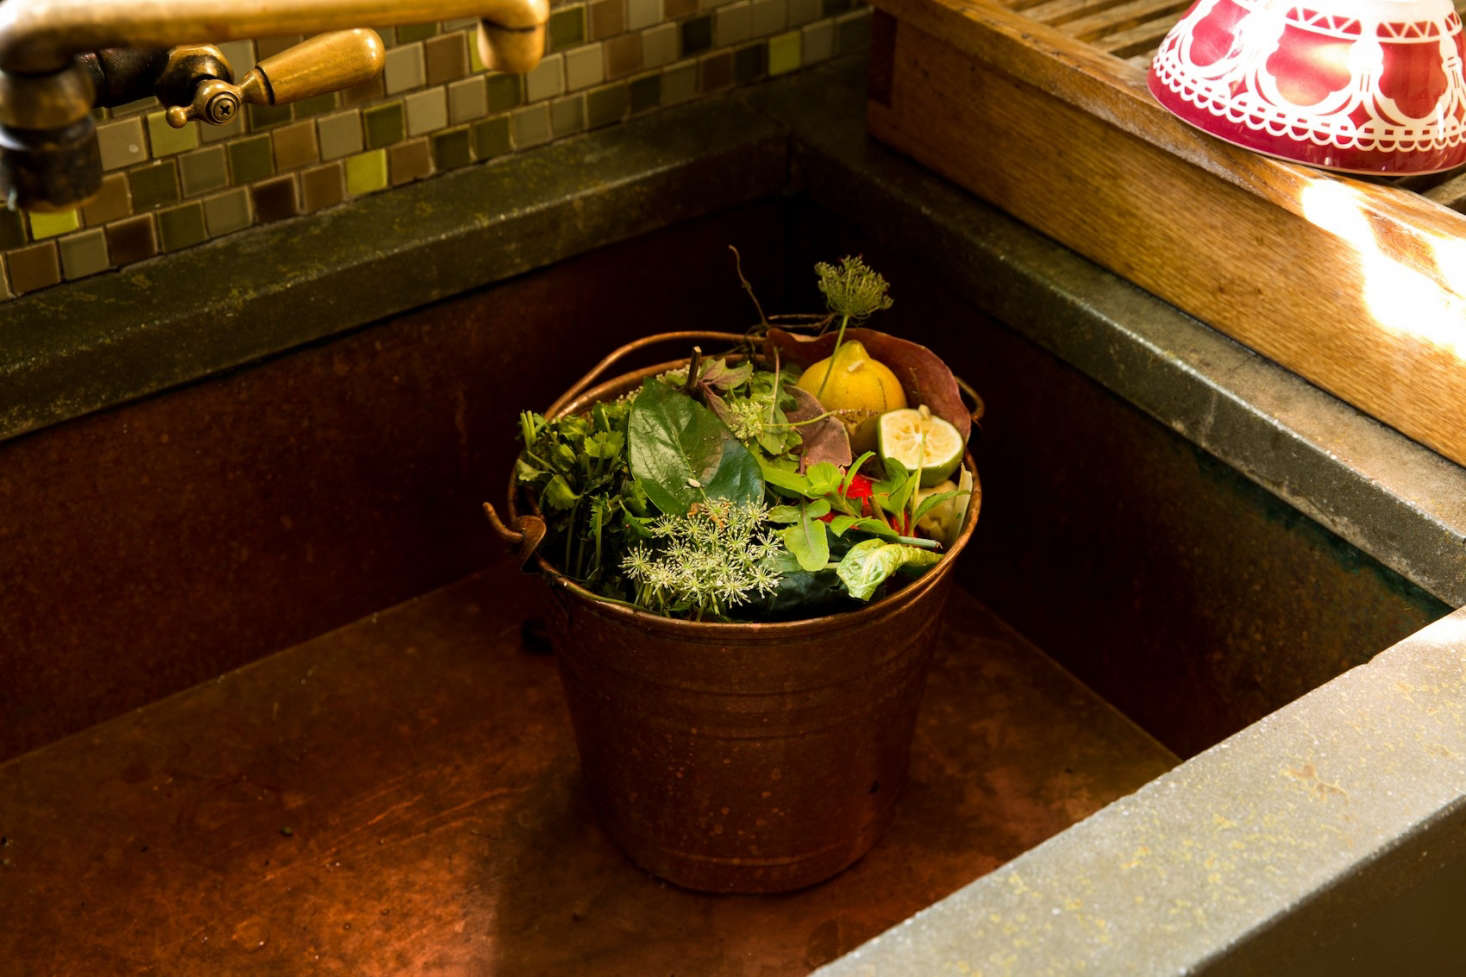 Chef Alice Waters keeps a compost bucket handy in her kitchen sink in Berkeley, California. Photograph by Daniel Dent for Gardenista.